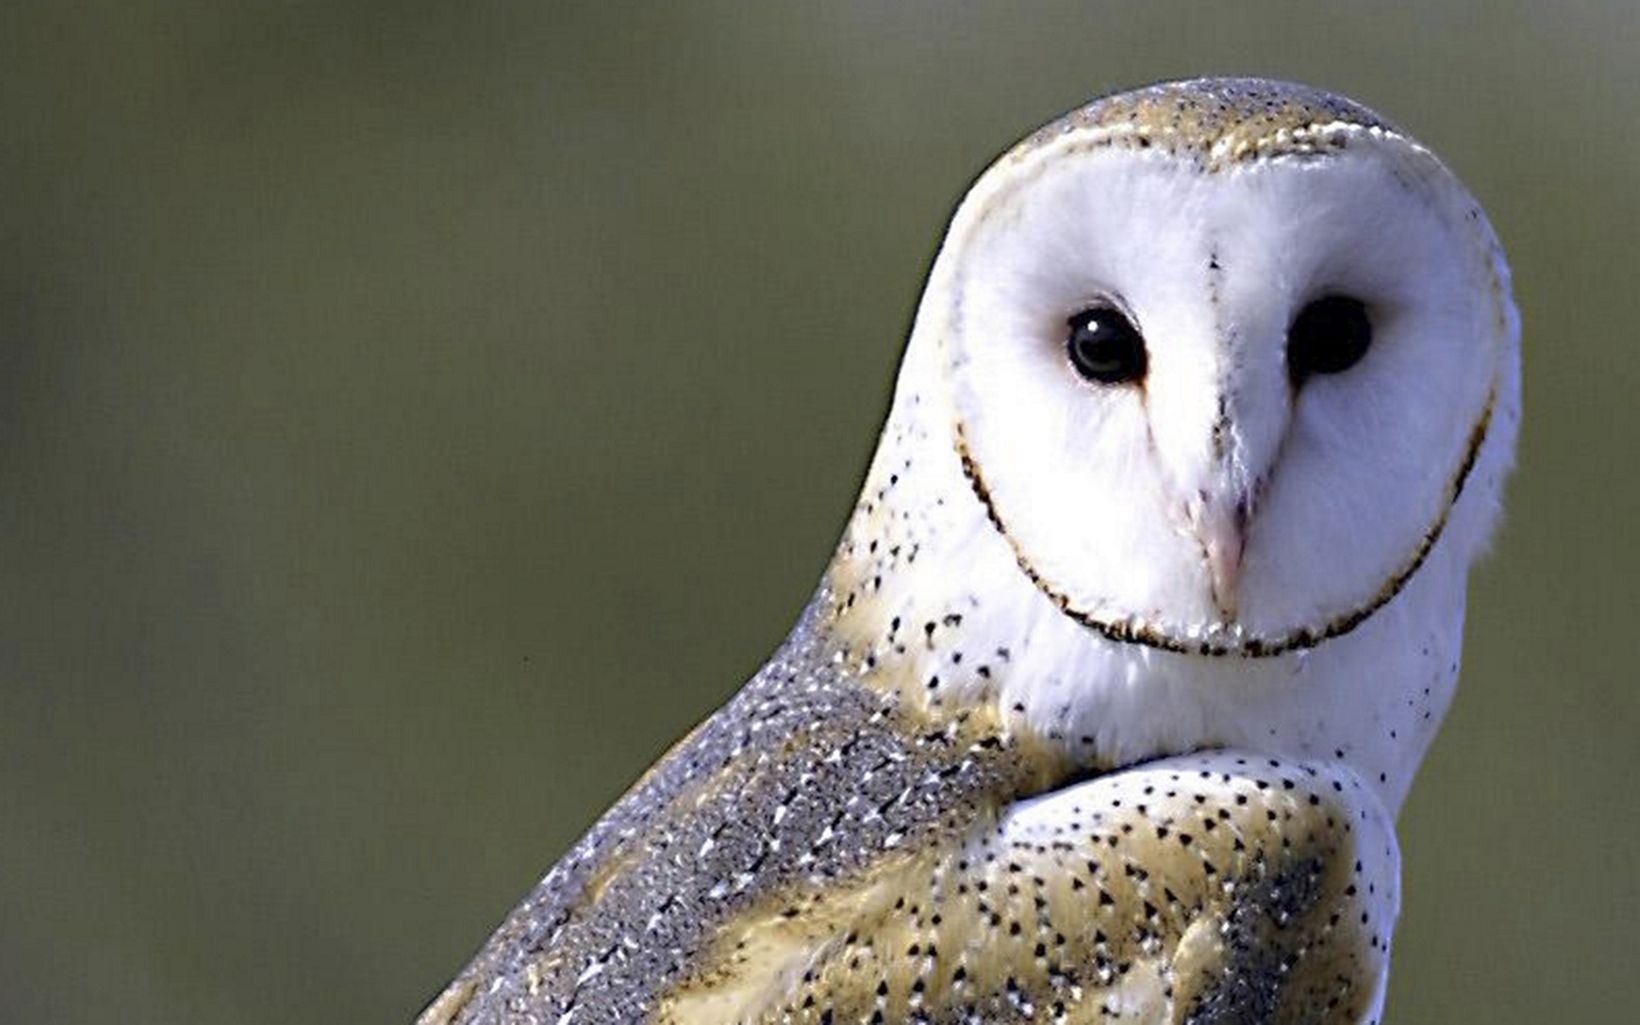 closeup of a white barn owl face